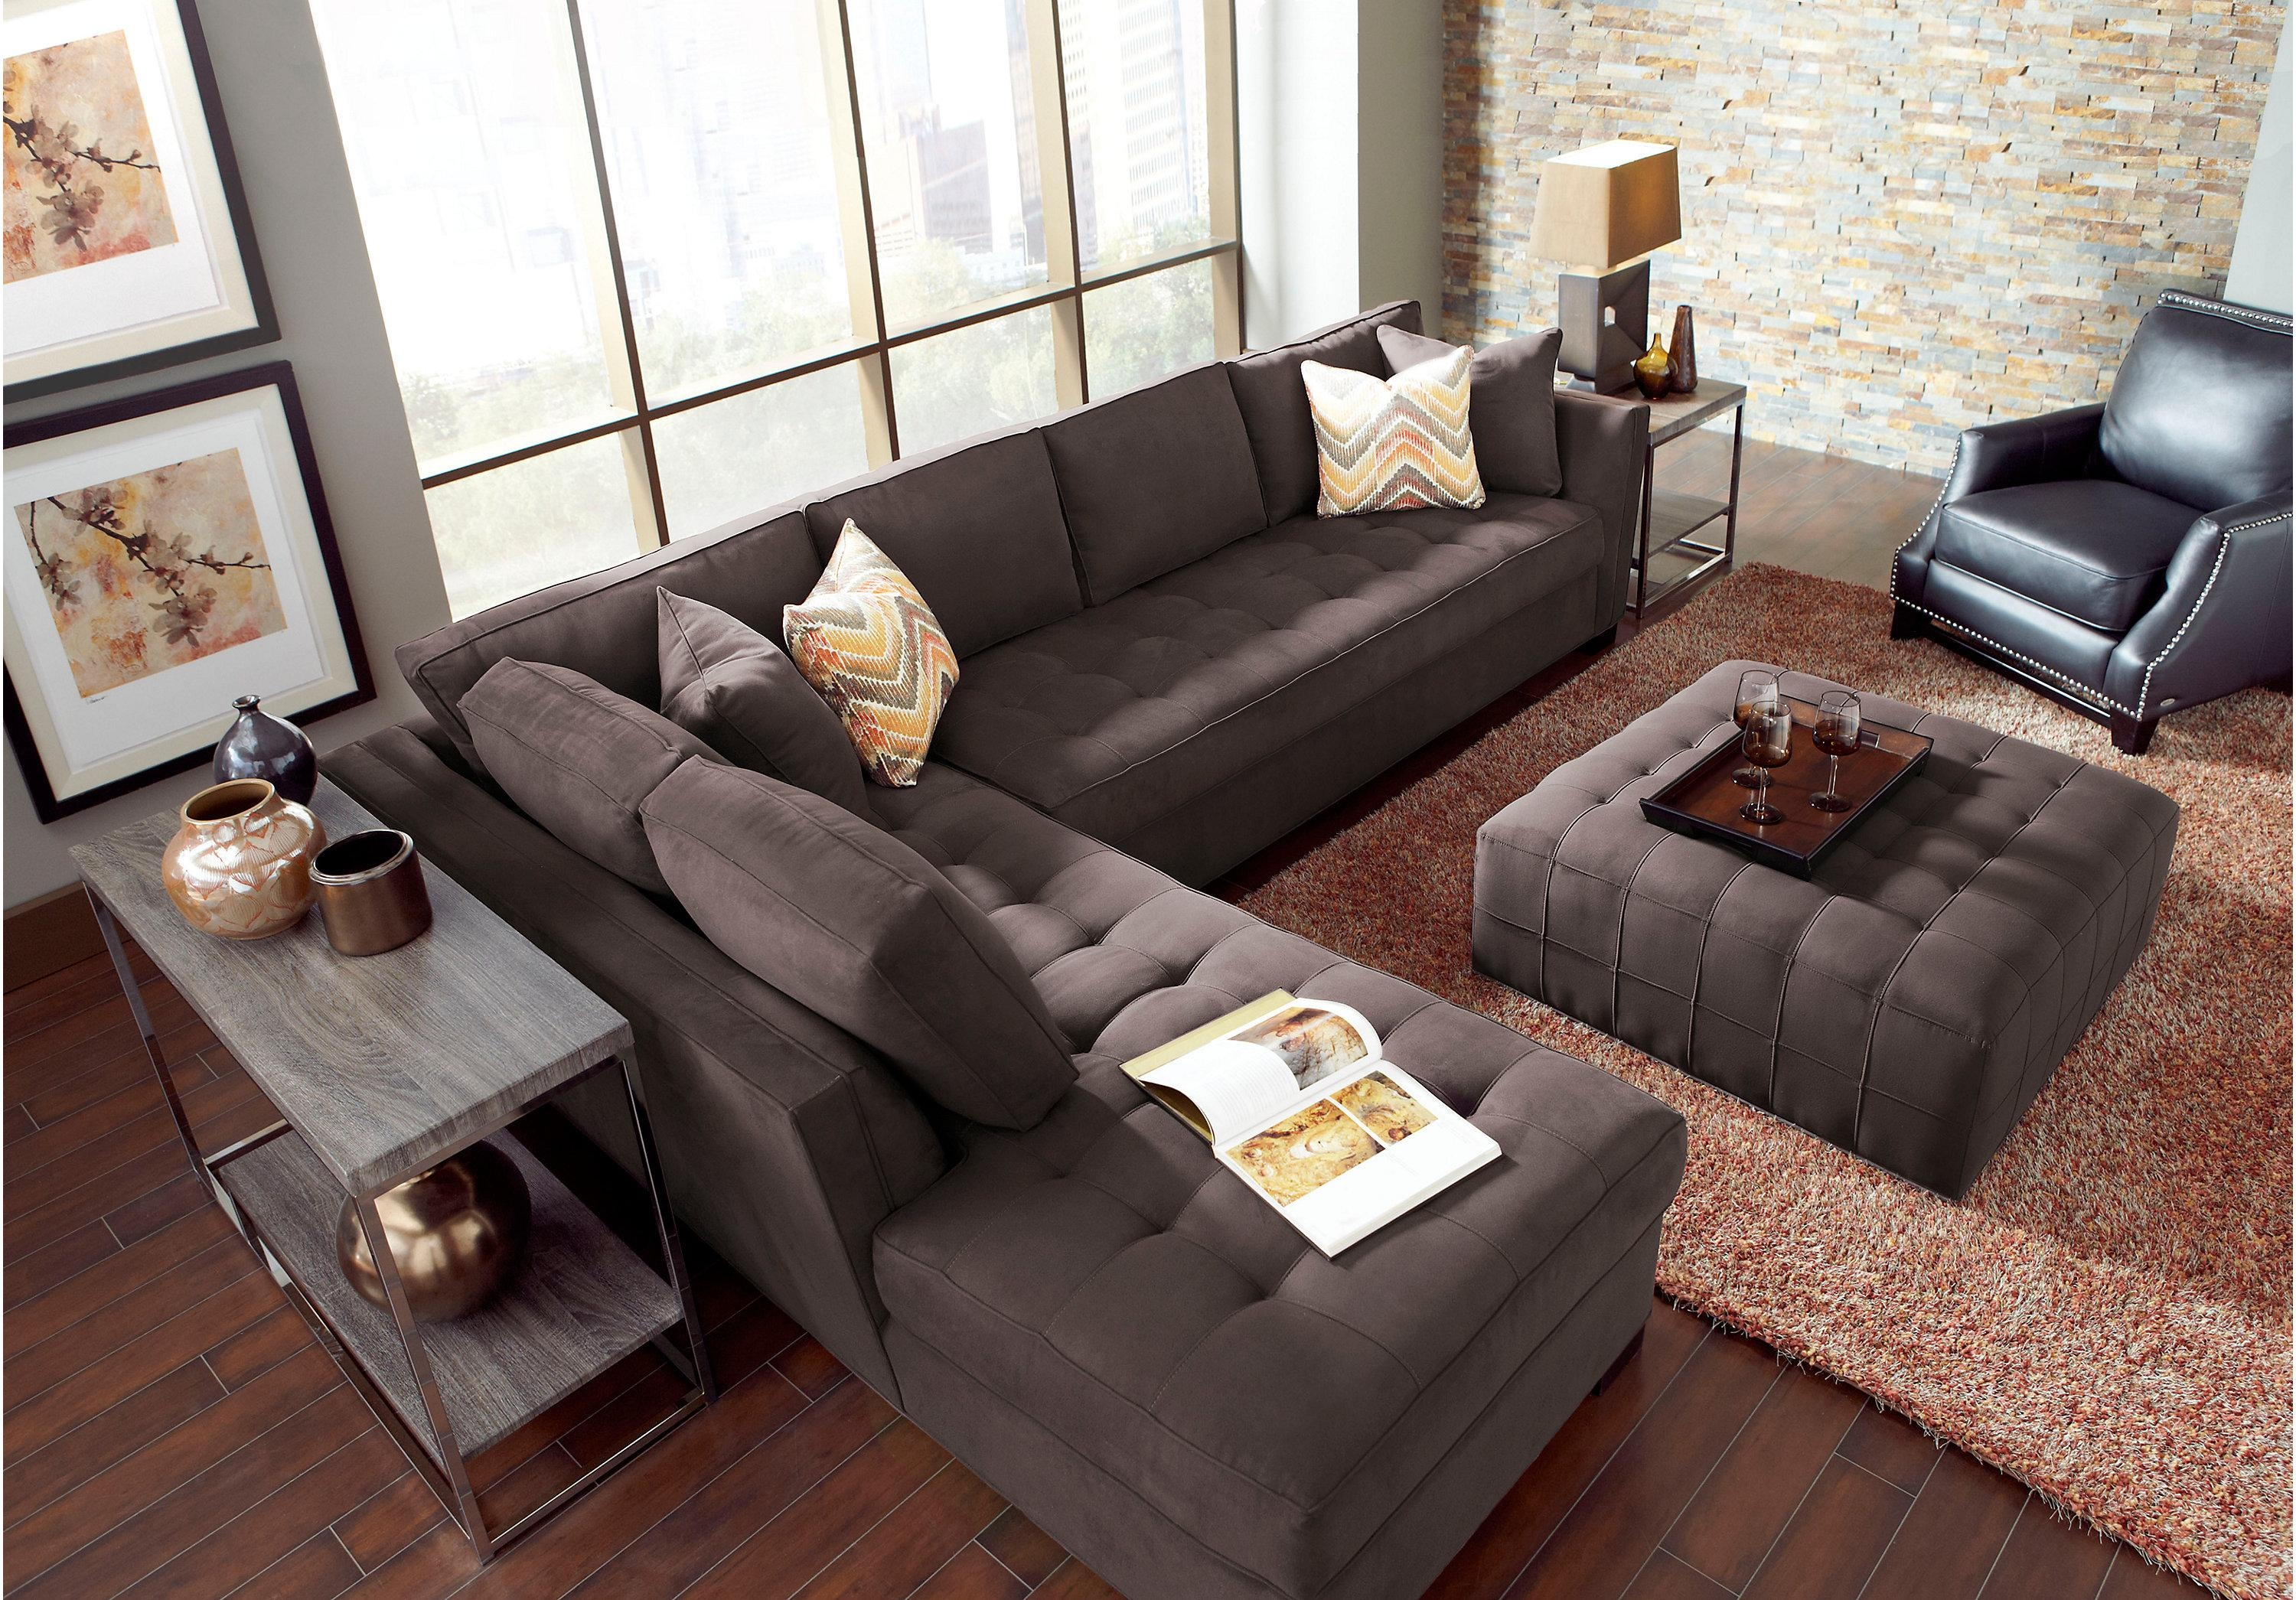 Furniture: Cindy Crawford Sectional Sofas | Cindy Crawford Leather Pertaining To Cindy Crawford Sectional Sofas (Image 13 of 20)